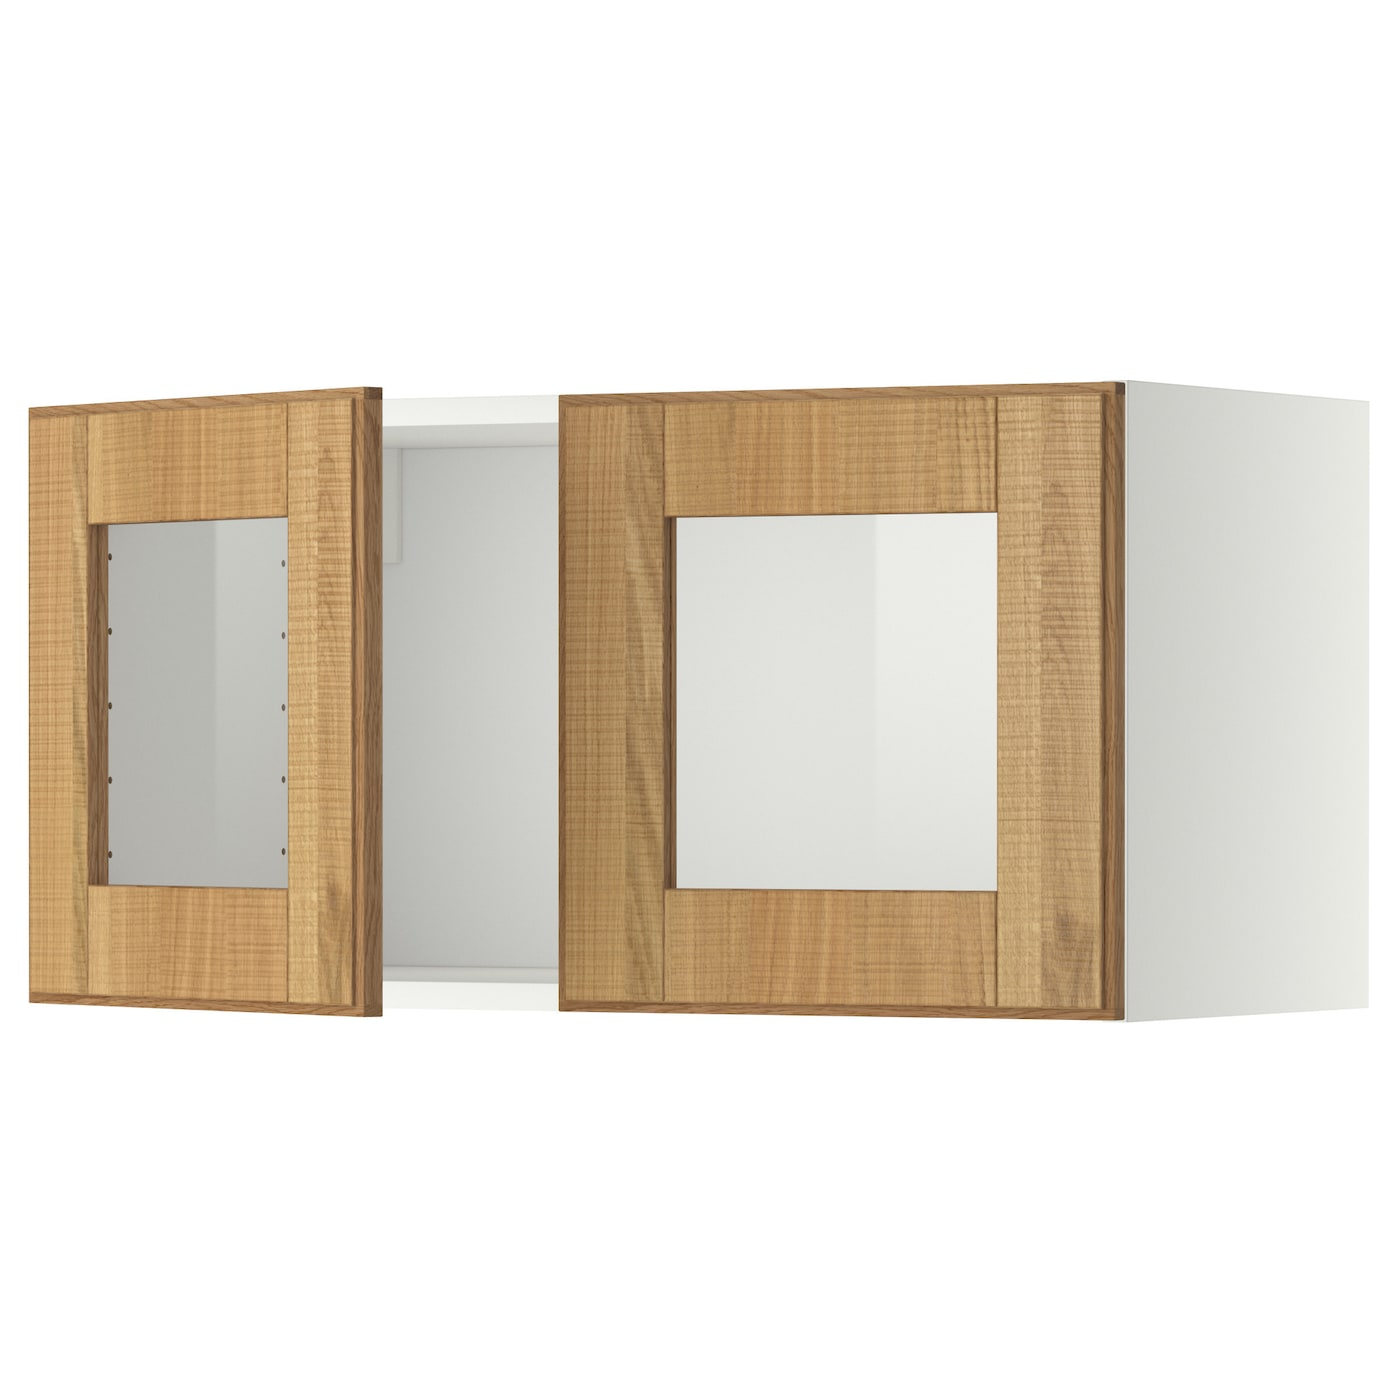 Metod wall cabinet with 2 glass doors white hyttan oak for Ikea glass door wall cabinet